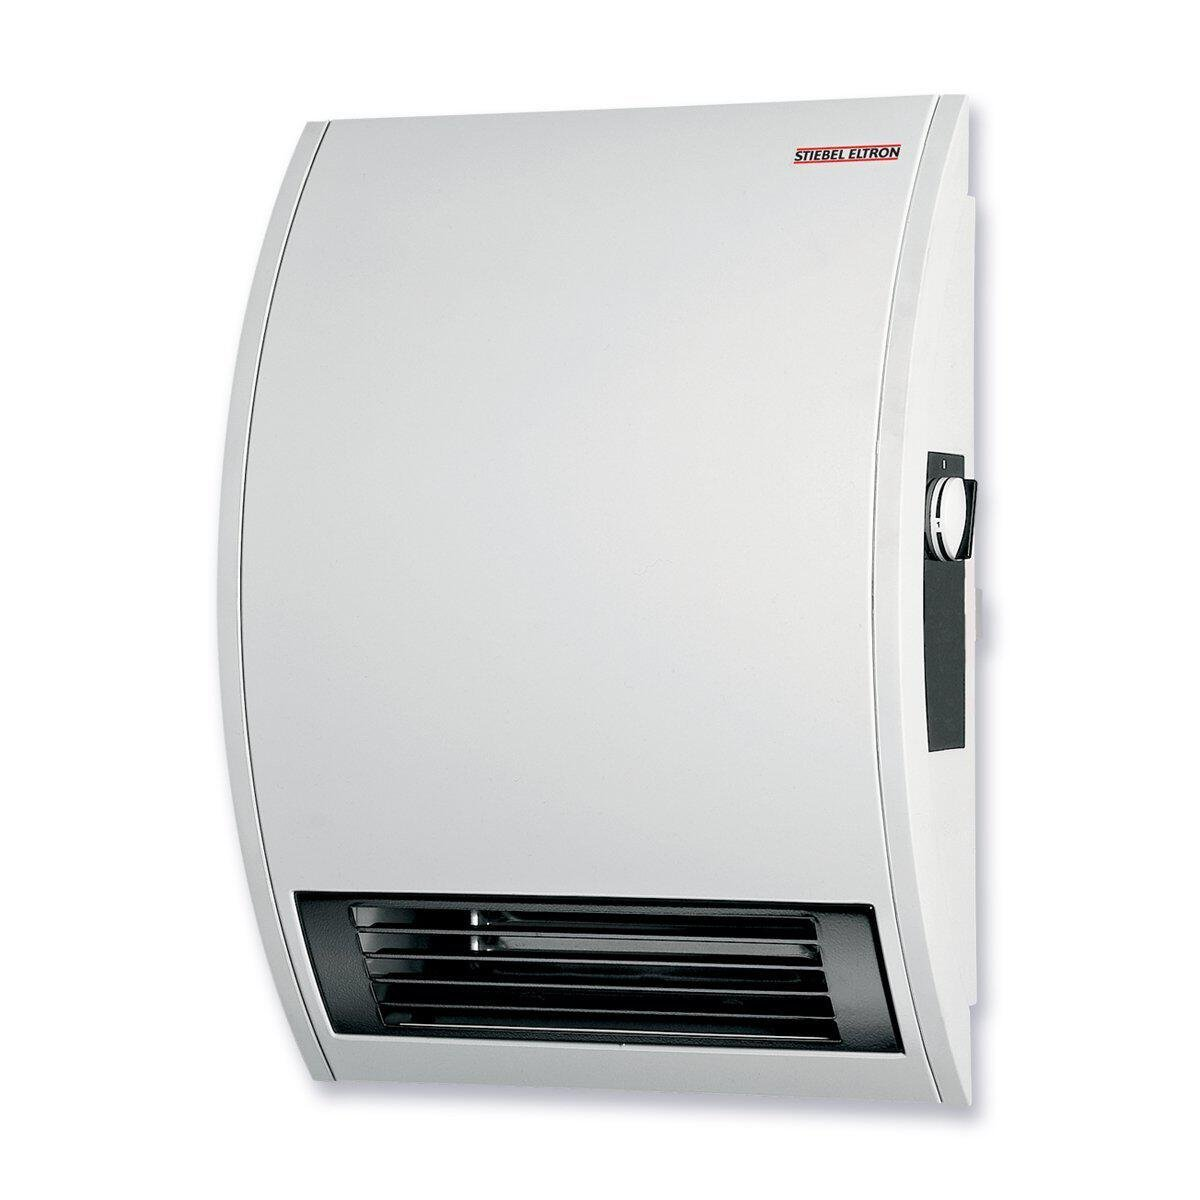 Stiebel Eltron Electric Space Heater with Fan - 120-Volt 1500-Watts, Wall Mounted